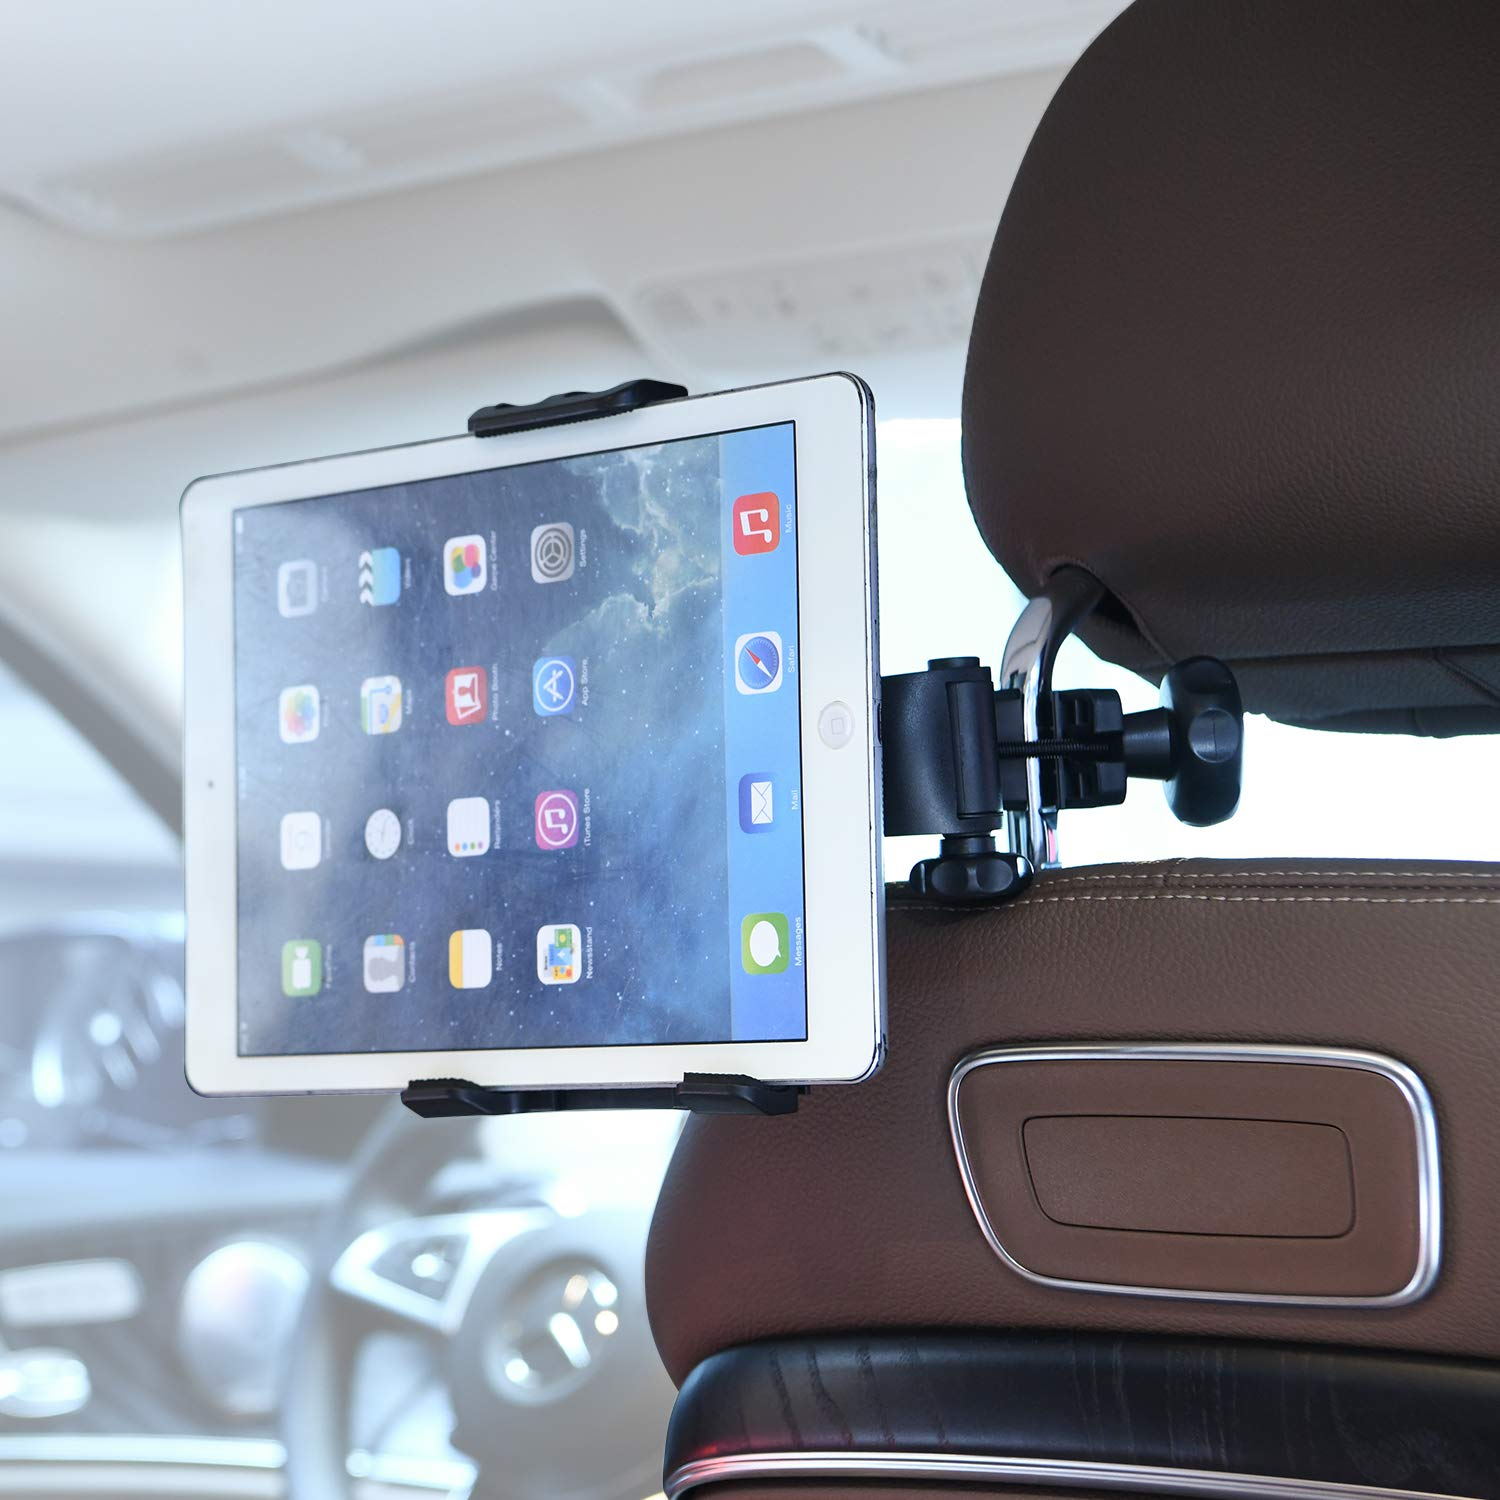 Moukey Mmsph-1 Microphone Stand//Headrest in the car Tablet Mount for Apple iPad iPad full range Samsung Galaxy Tab Surface Pro//Book /& iPhone XR XS MAX X 8 7 Plus 6S Galaxy S9 Note LG V30 Smartphones